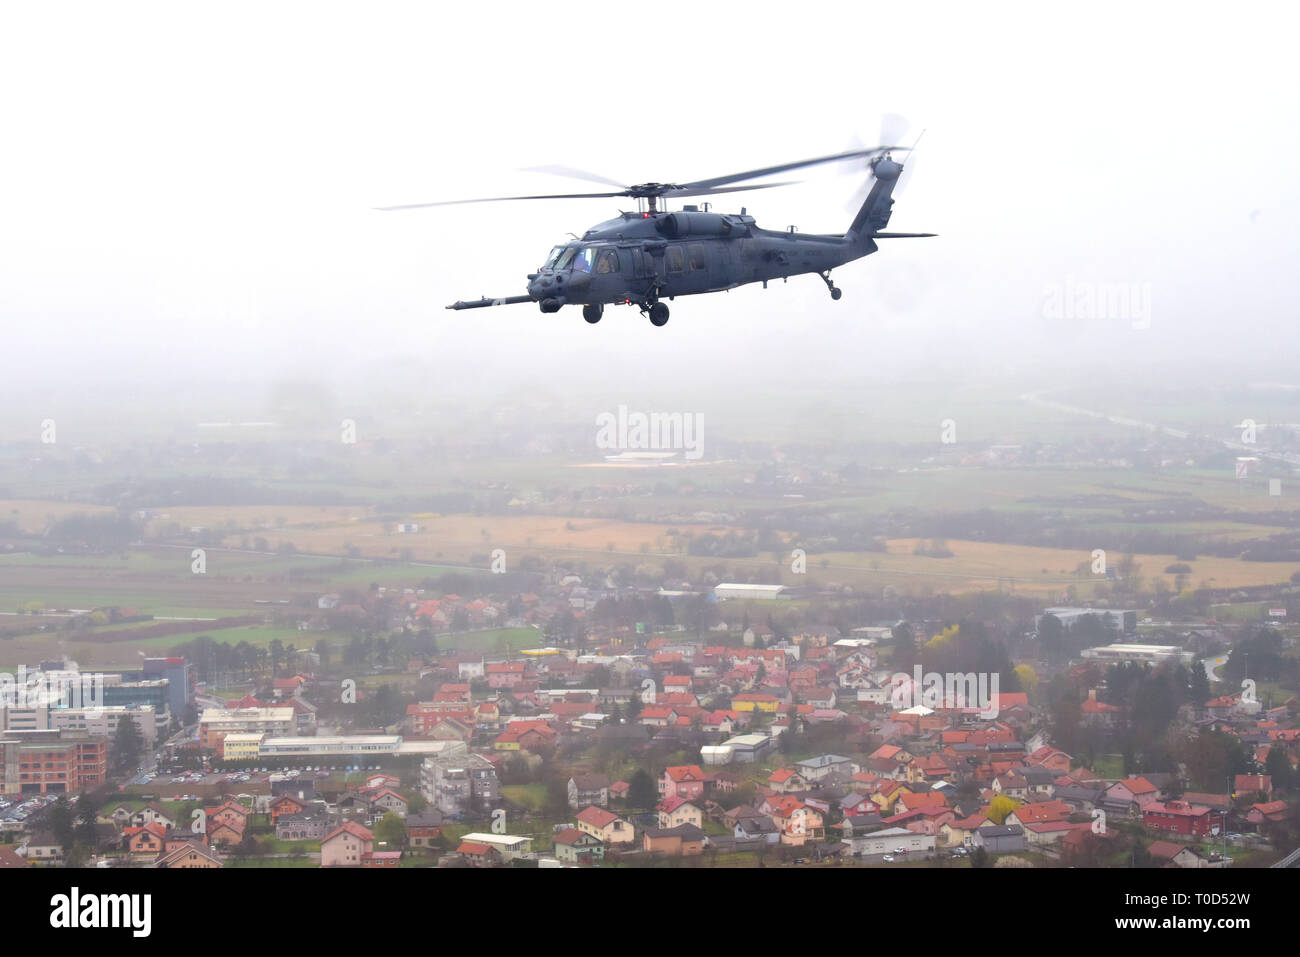 A 56th Rescue Squadron HH-60 Pave Hawk, based out of Aviano Air Base, Italy, transports simulated casualties during a Non-combatant Evacuation Operation exercise near Zagreb, Croatia, March 18, 2019. NEO exercises simulate the ordered or authorized departure of civilians and non-essential military personnel from danger in an overseas country. (U.S. Air Force photo by Senior Airman Kevin Sommer Giron) - Stock Image